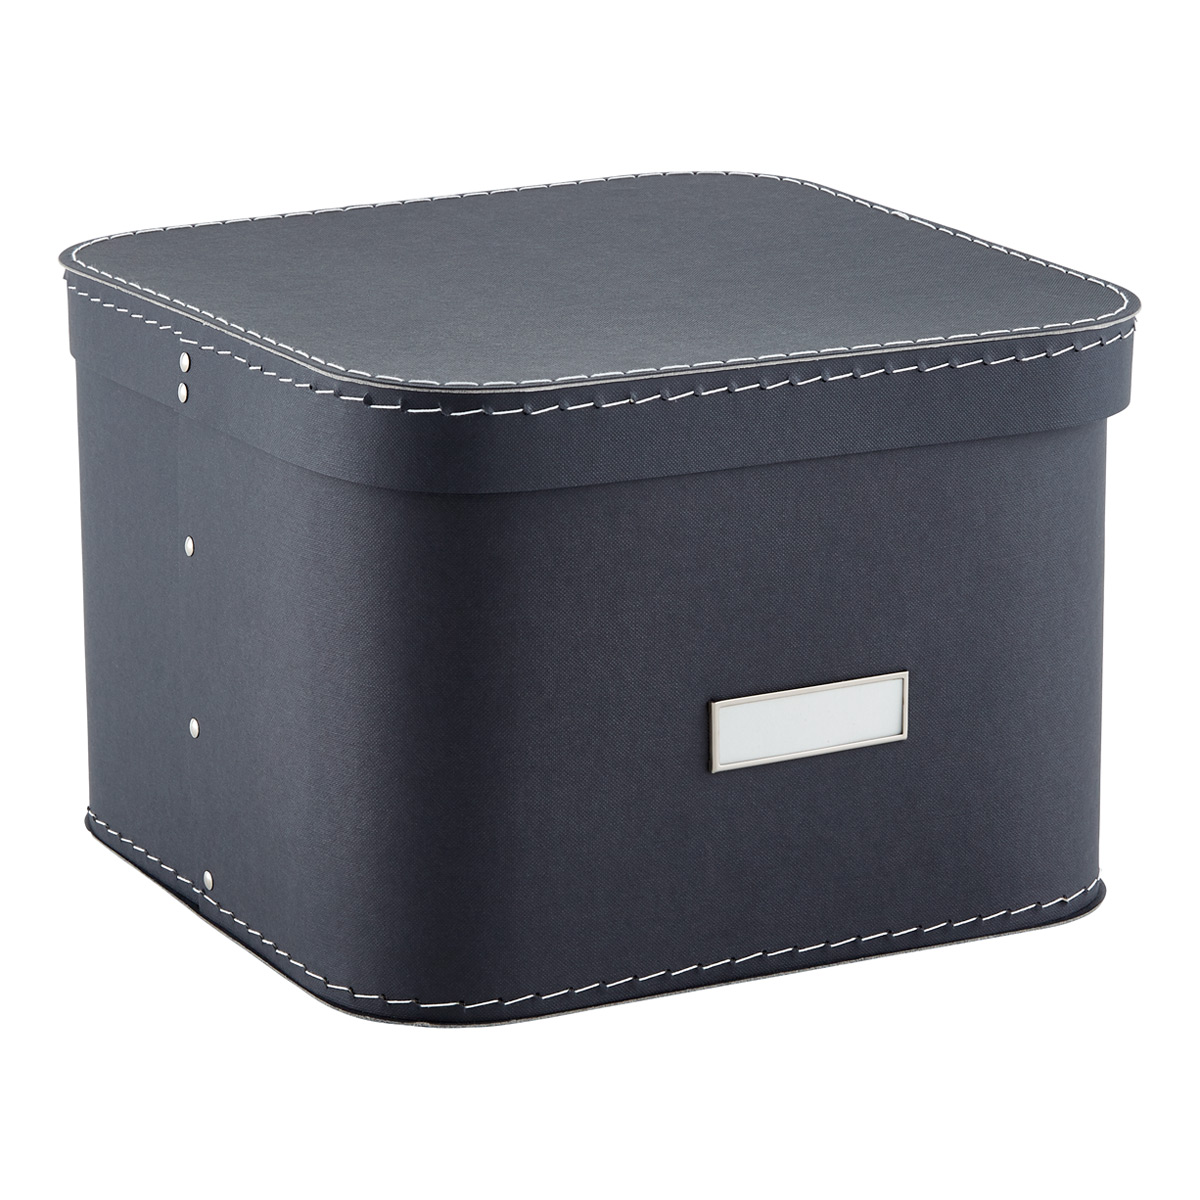 Etonnant Graphite Oskar Storage Box With Lid